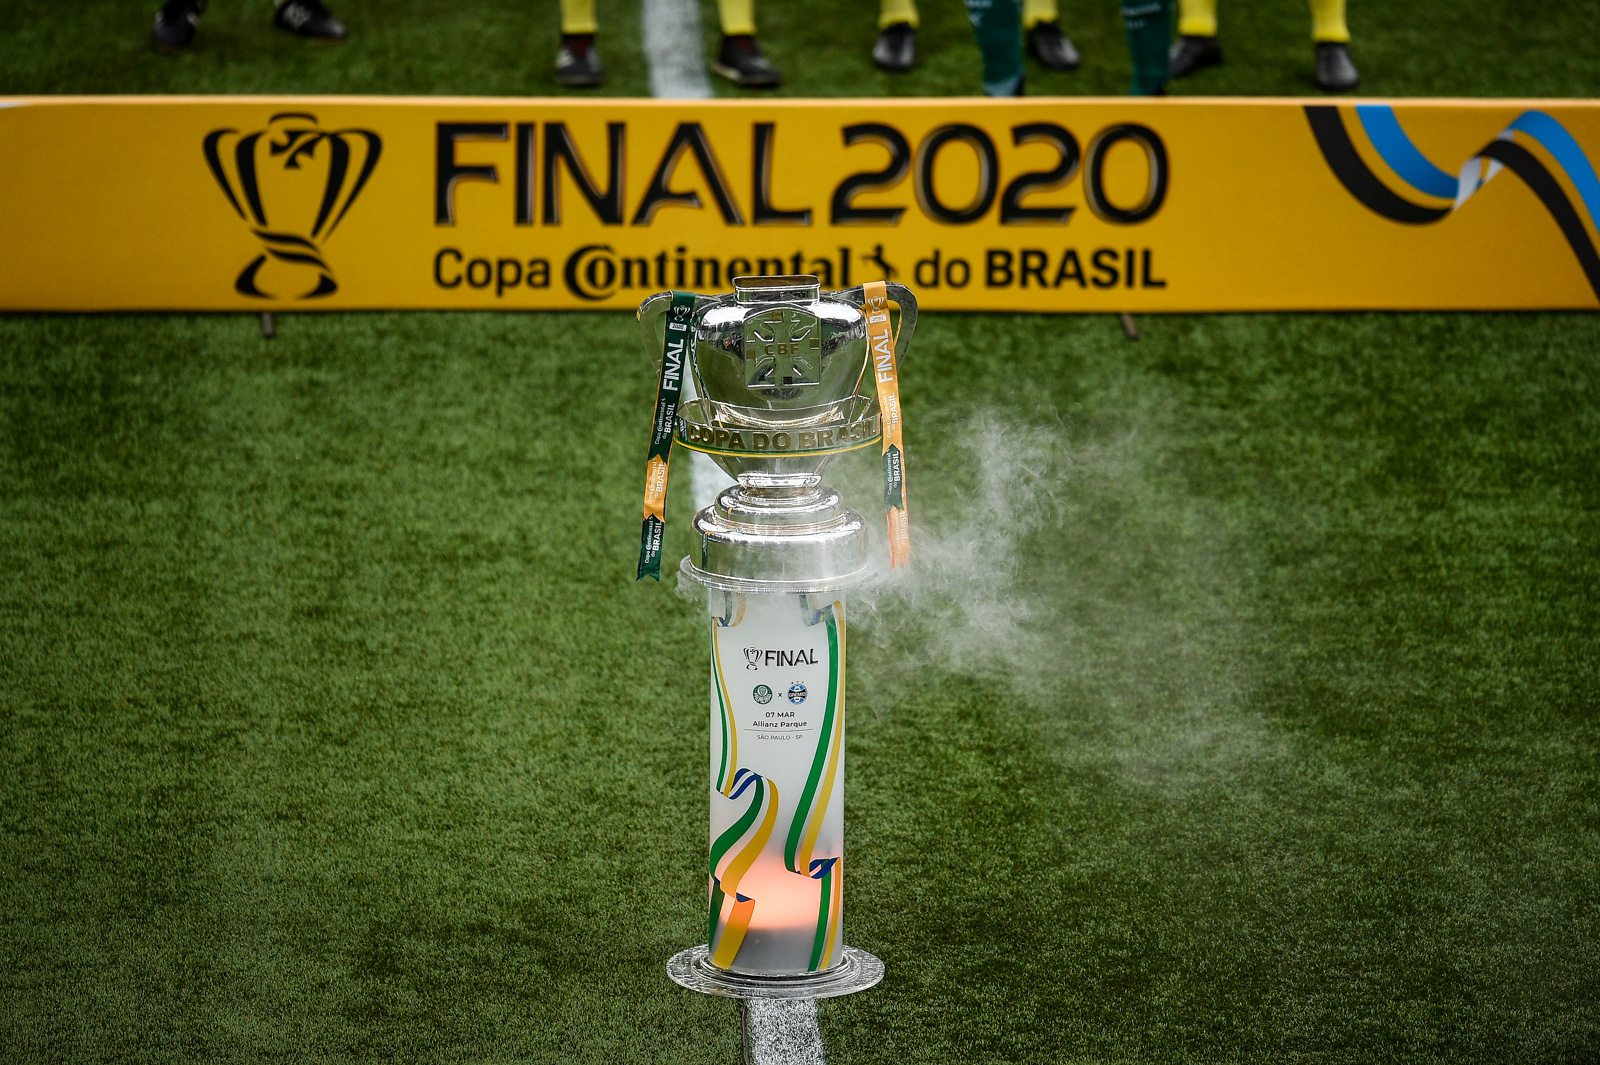 07-03-2021 - Final Copa do Brasil 2020 -